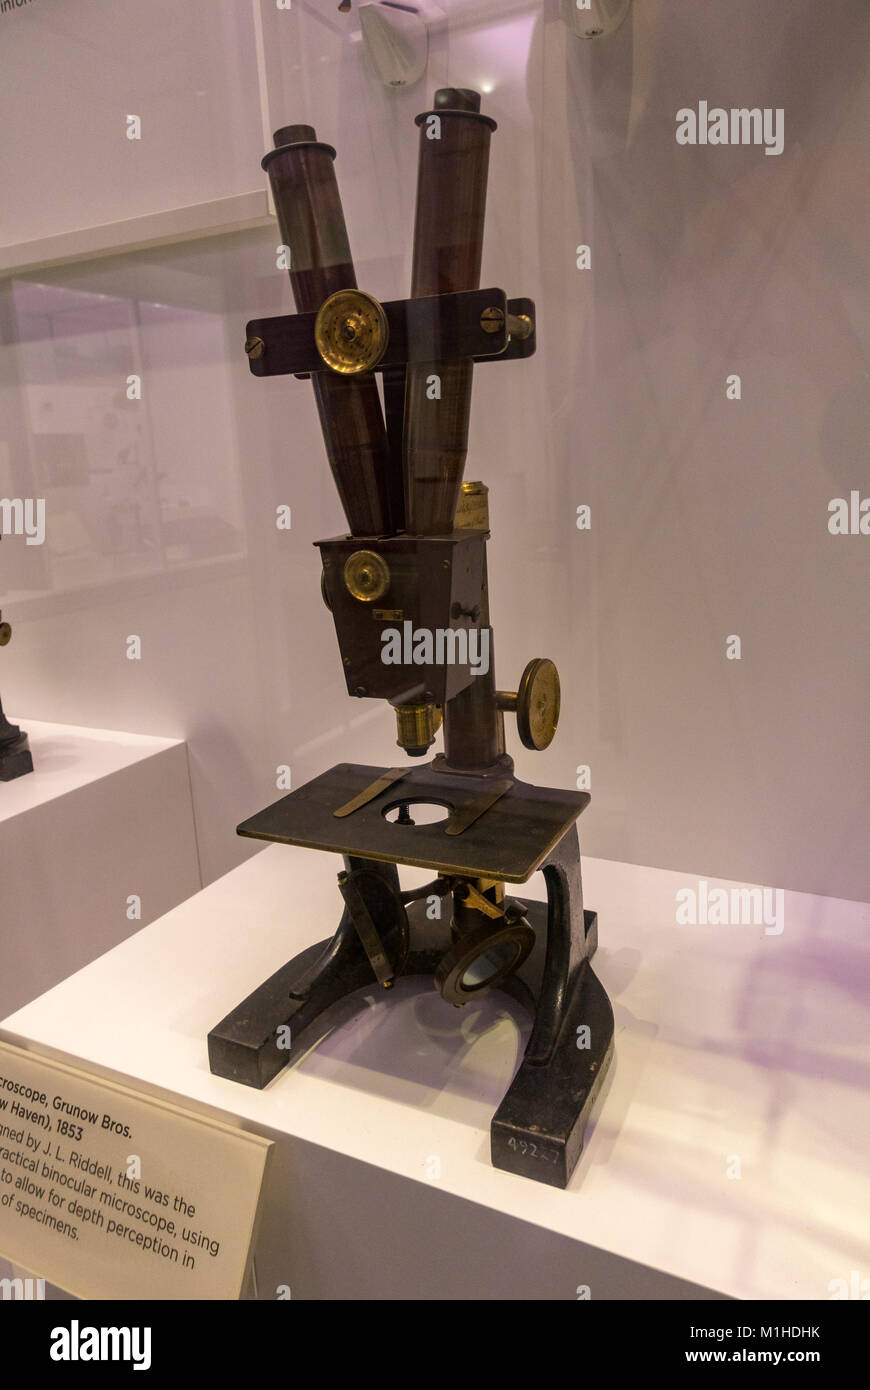 Grunow Bros (New Haven) binocular microscope designed by J.L. Riddell on display in the National Museum of Health - Stock Image